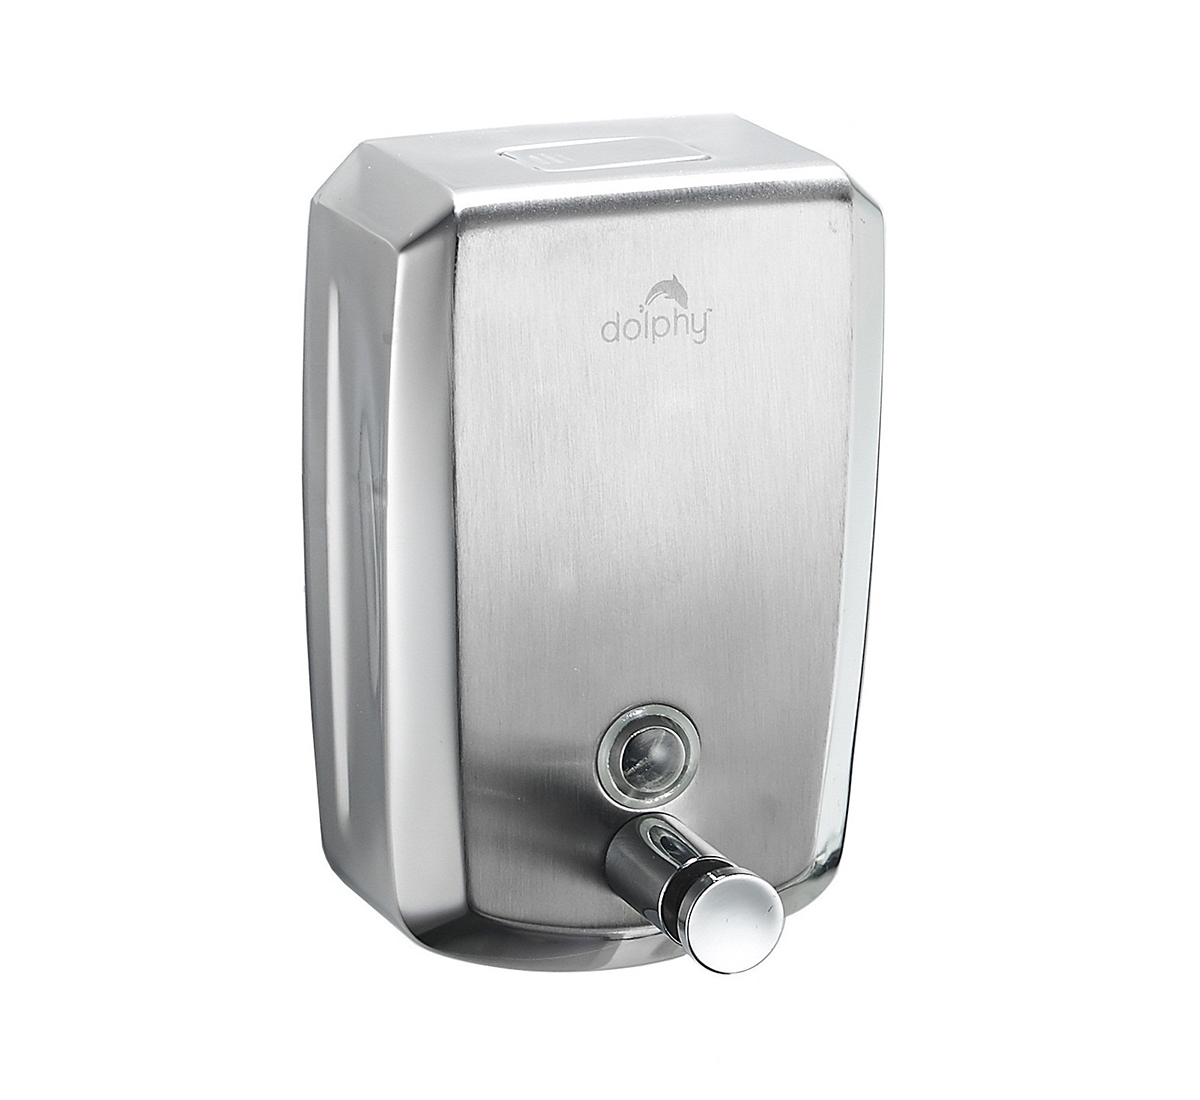 304 SS Soap Dispenser - 1000 ml